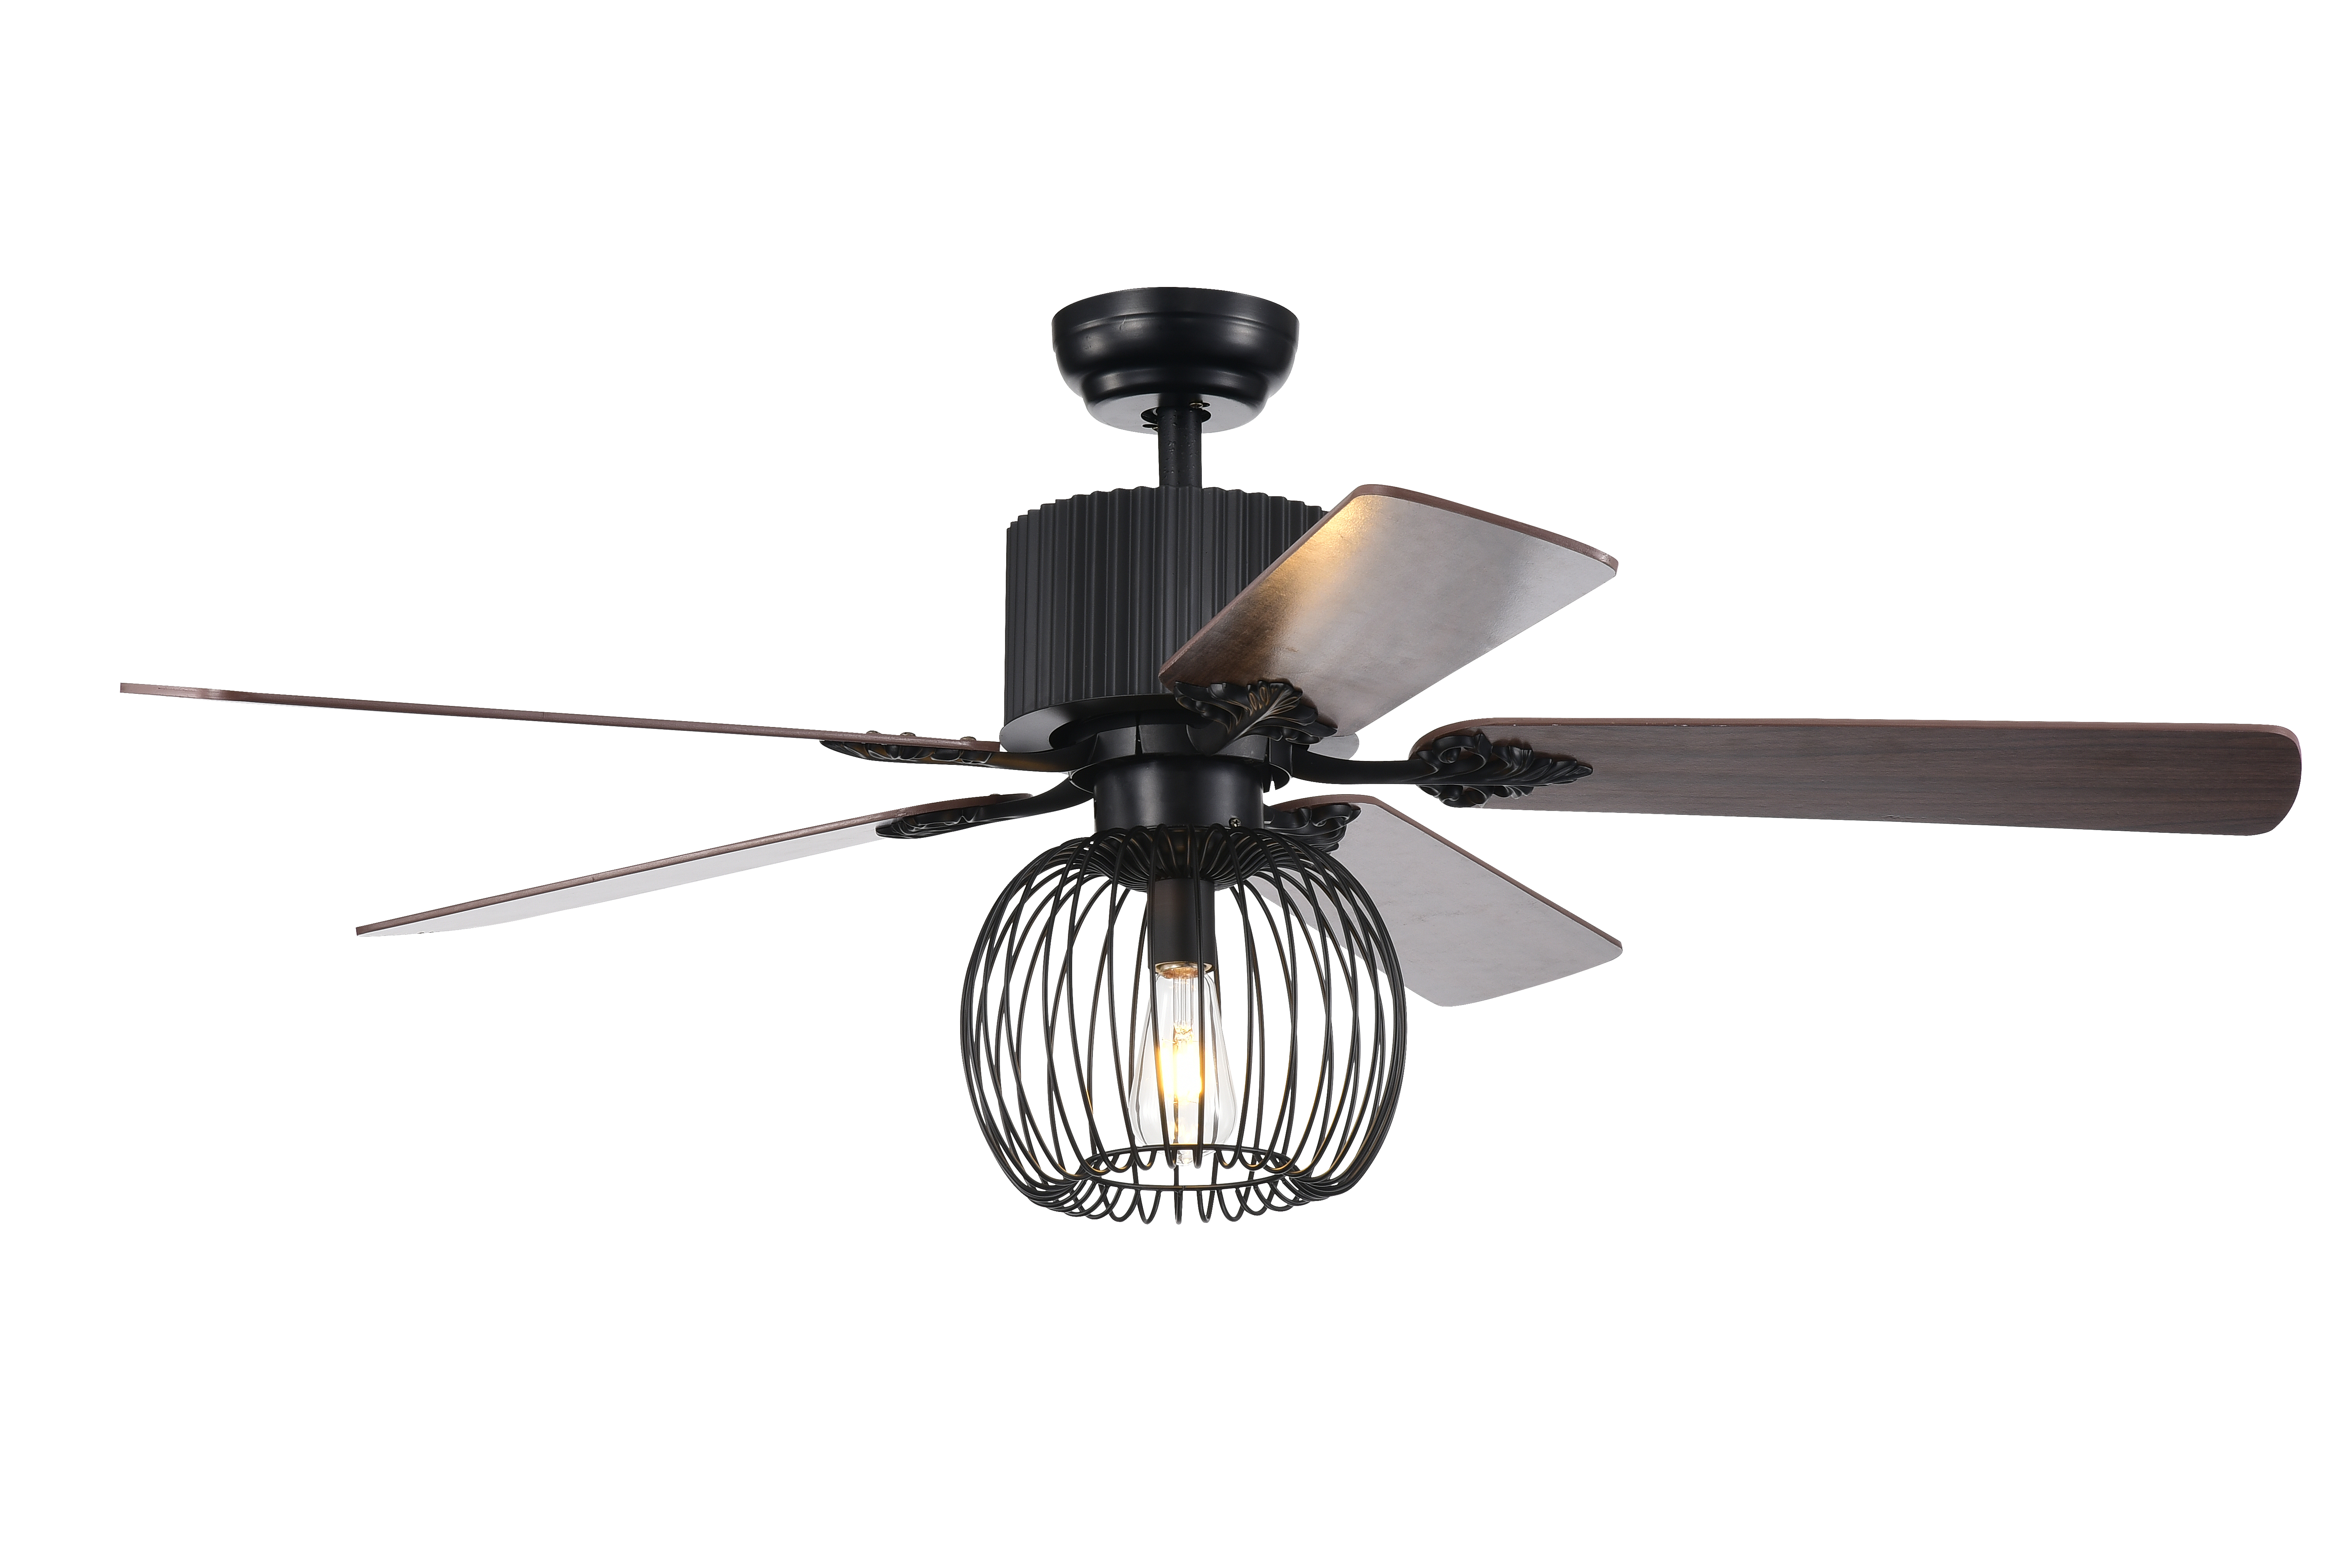 Aguano Black 52-inch Lighted Ceiling Fan (Remote Controlled & 2 Color Option Blades)